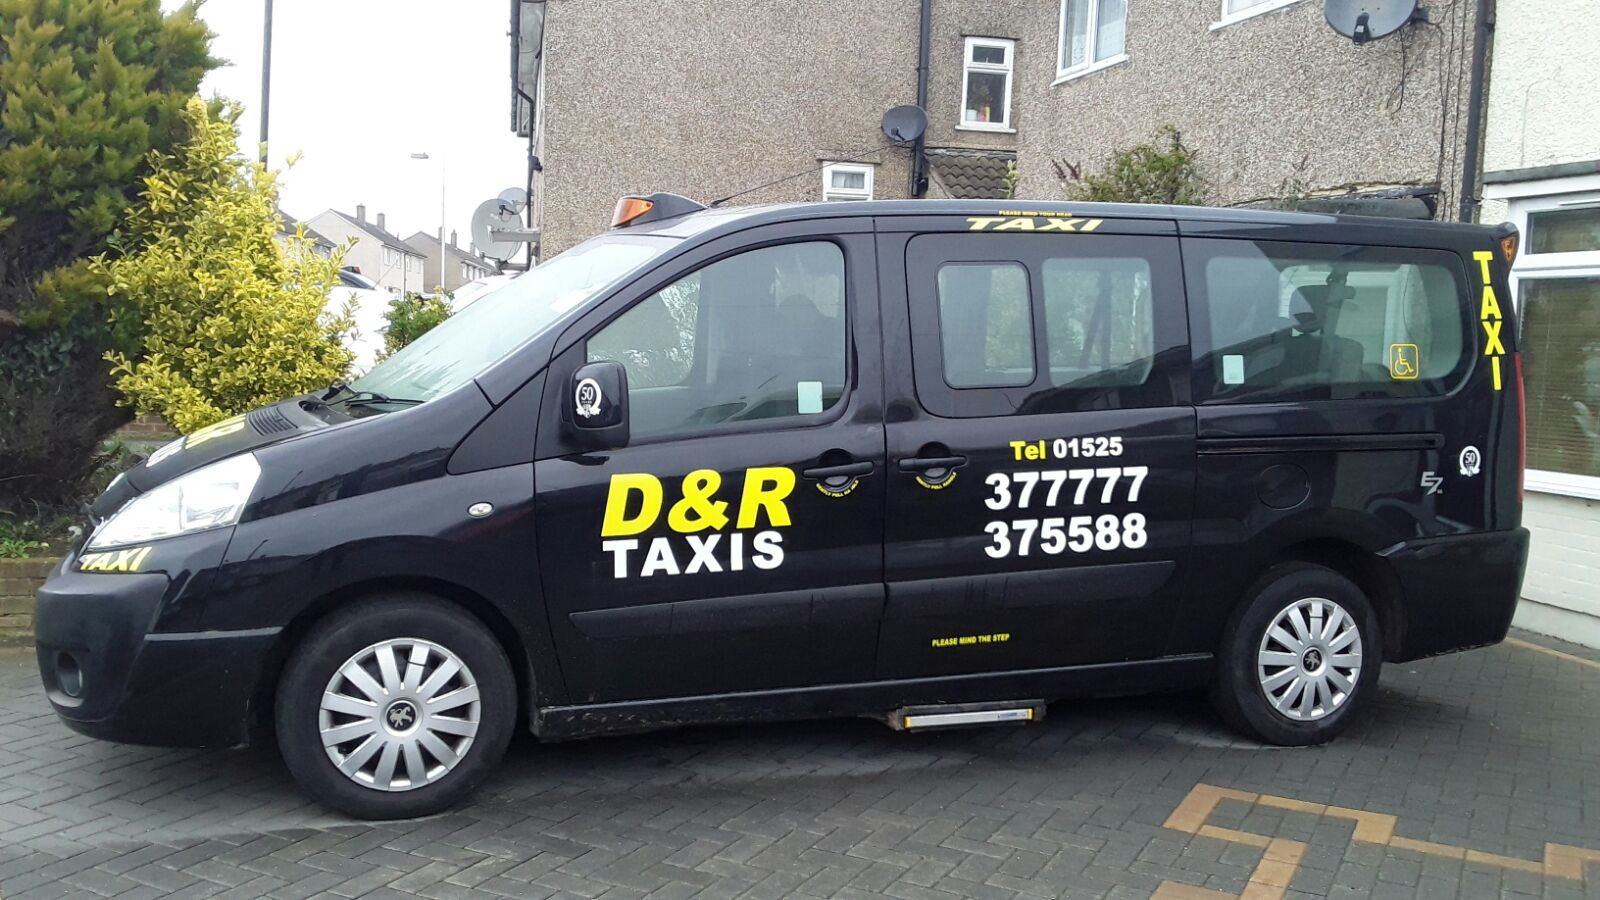 D&R Taxis Plus - Taxis In Leighton Buzzard